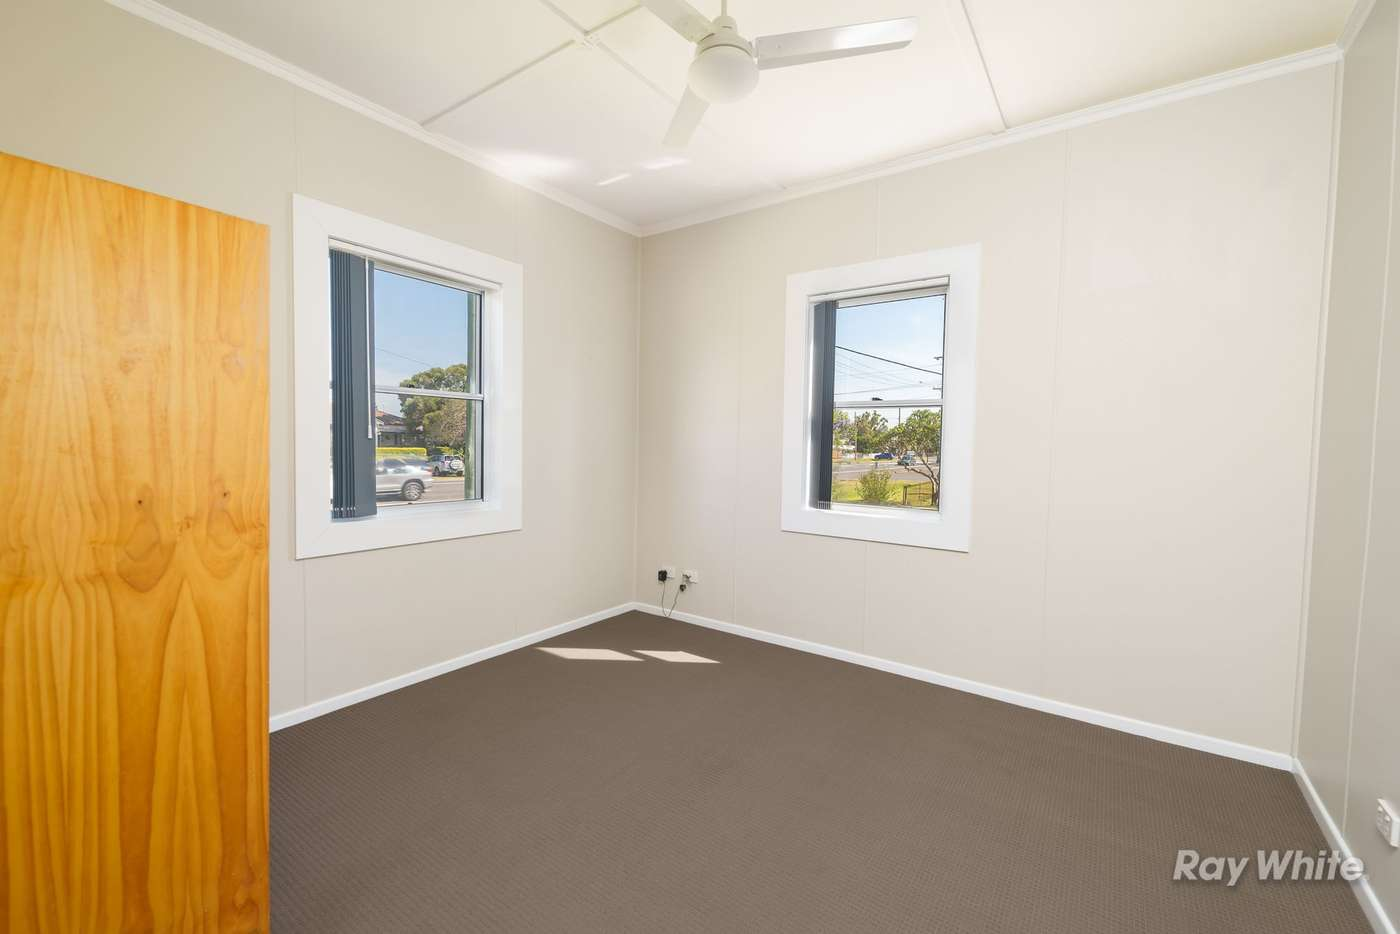 Sixth view of Homely house listing, 179 Turf Street, Grafton NSW 2460